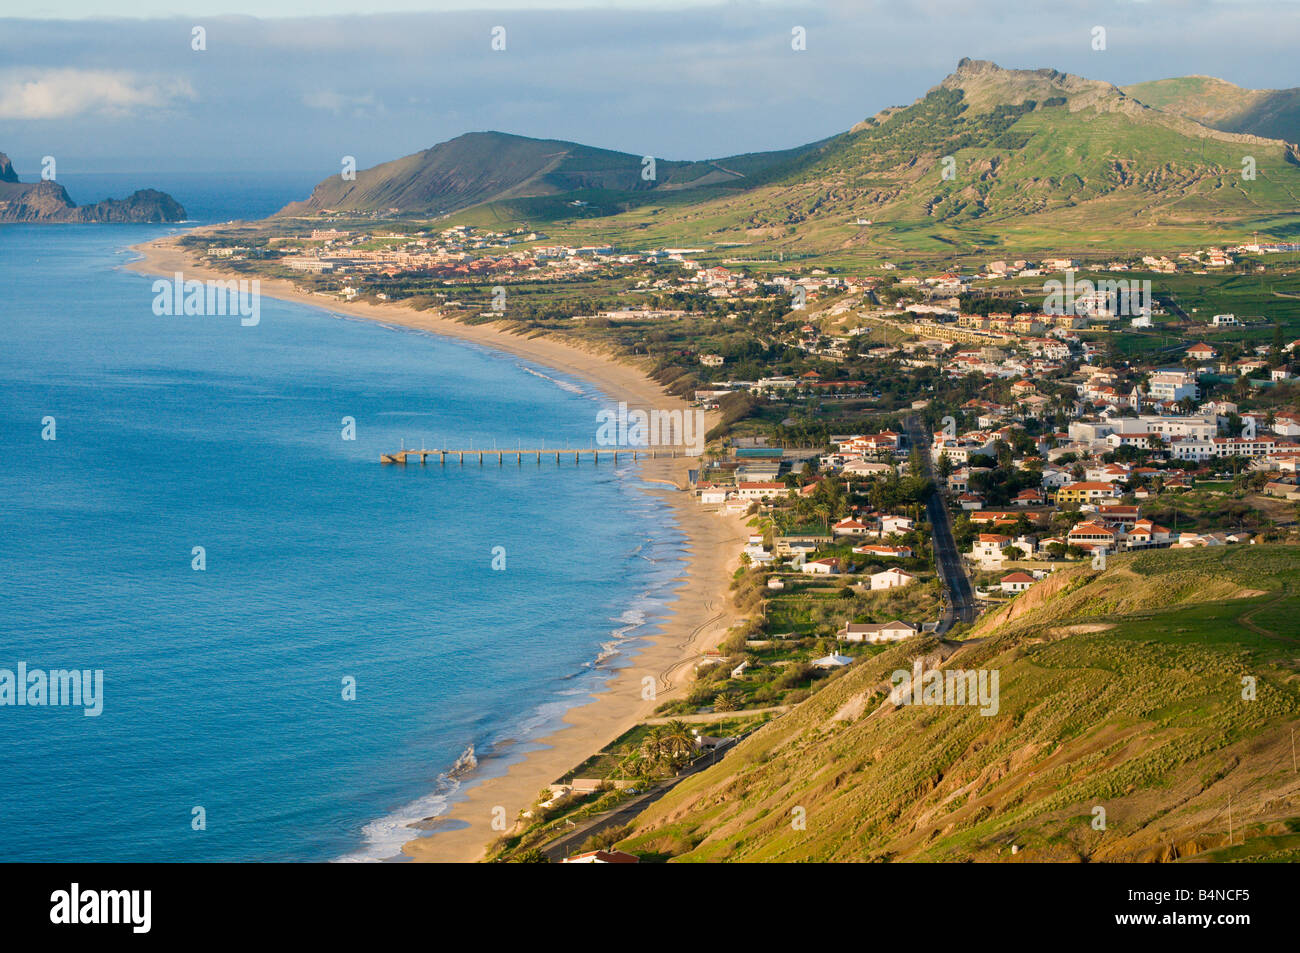 View over beach on Porto Santo the neighbouring island to Madeira - Stock Image